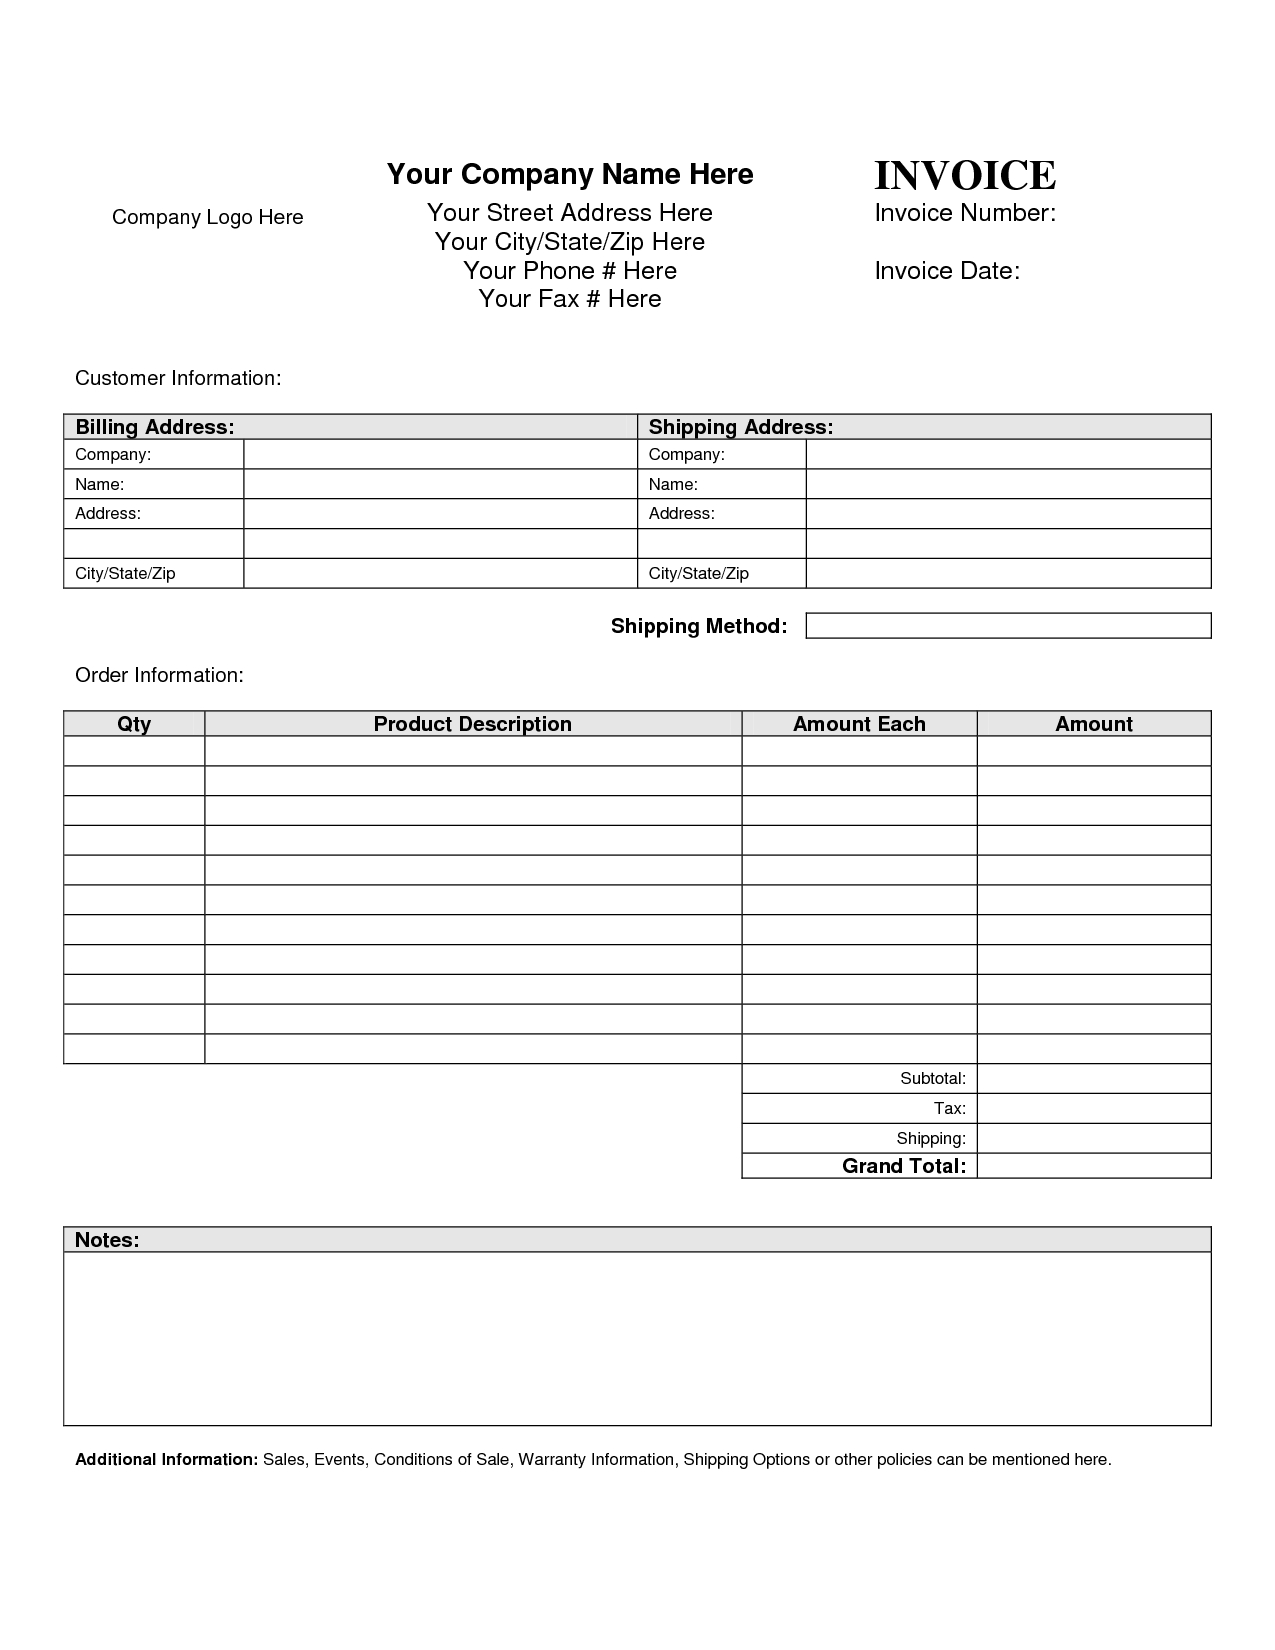 Sample Invoice Forms